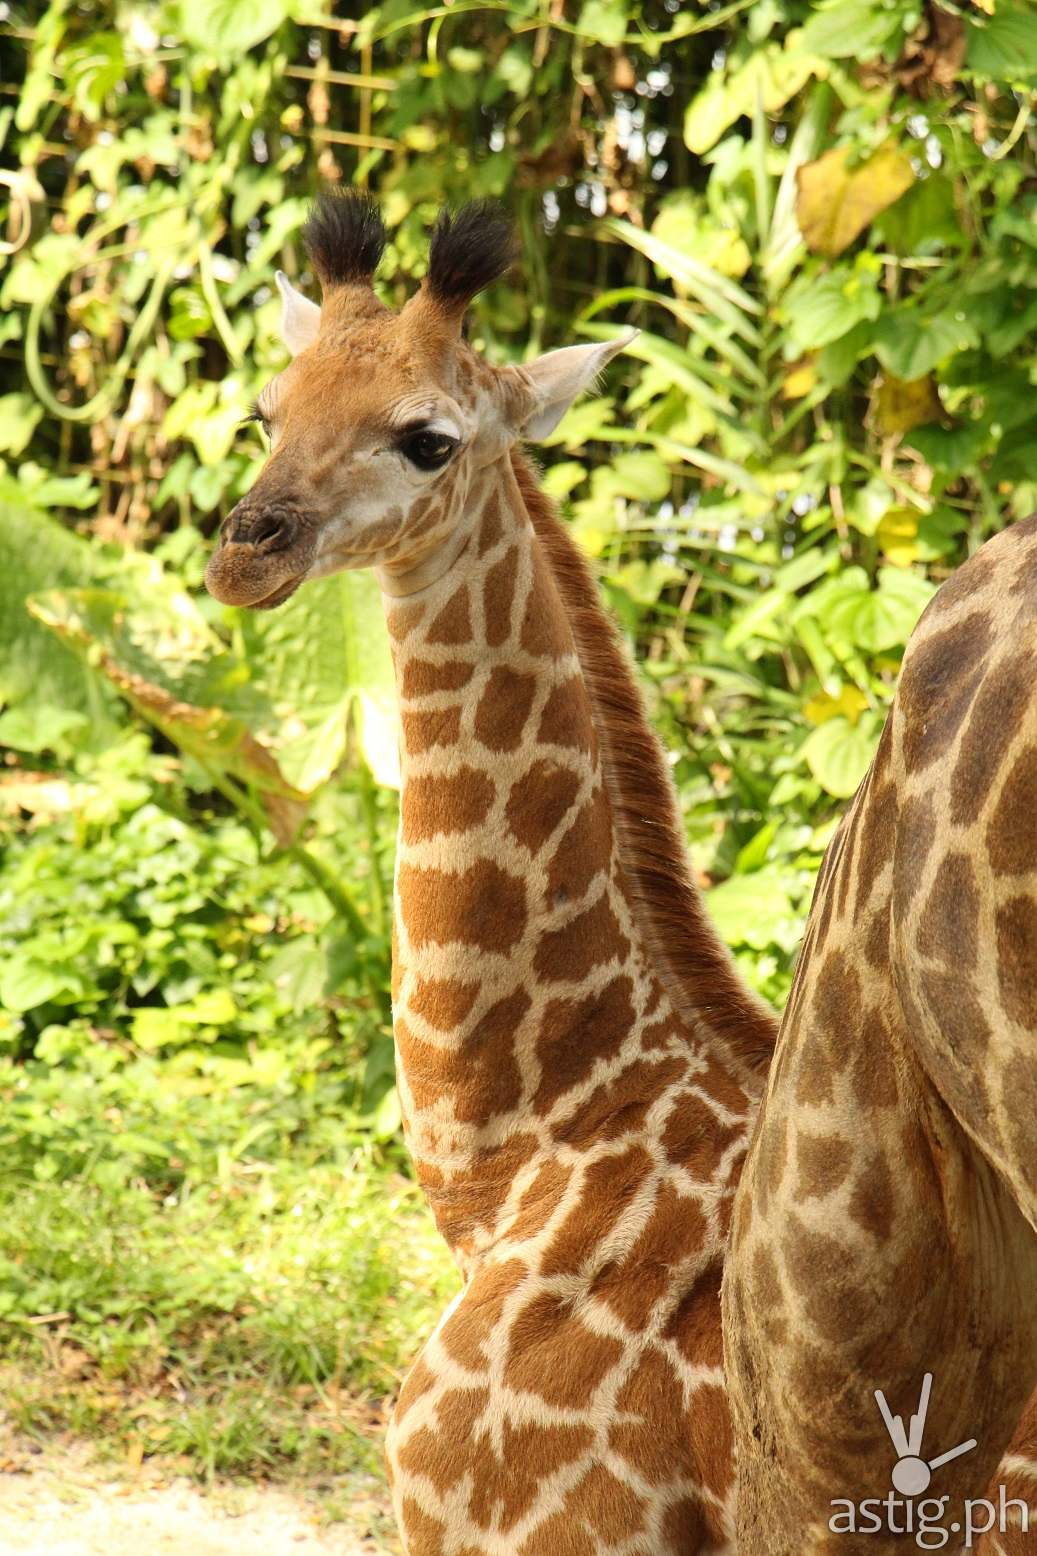 Singapore Zoo SG50 giraffe calf